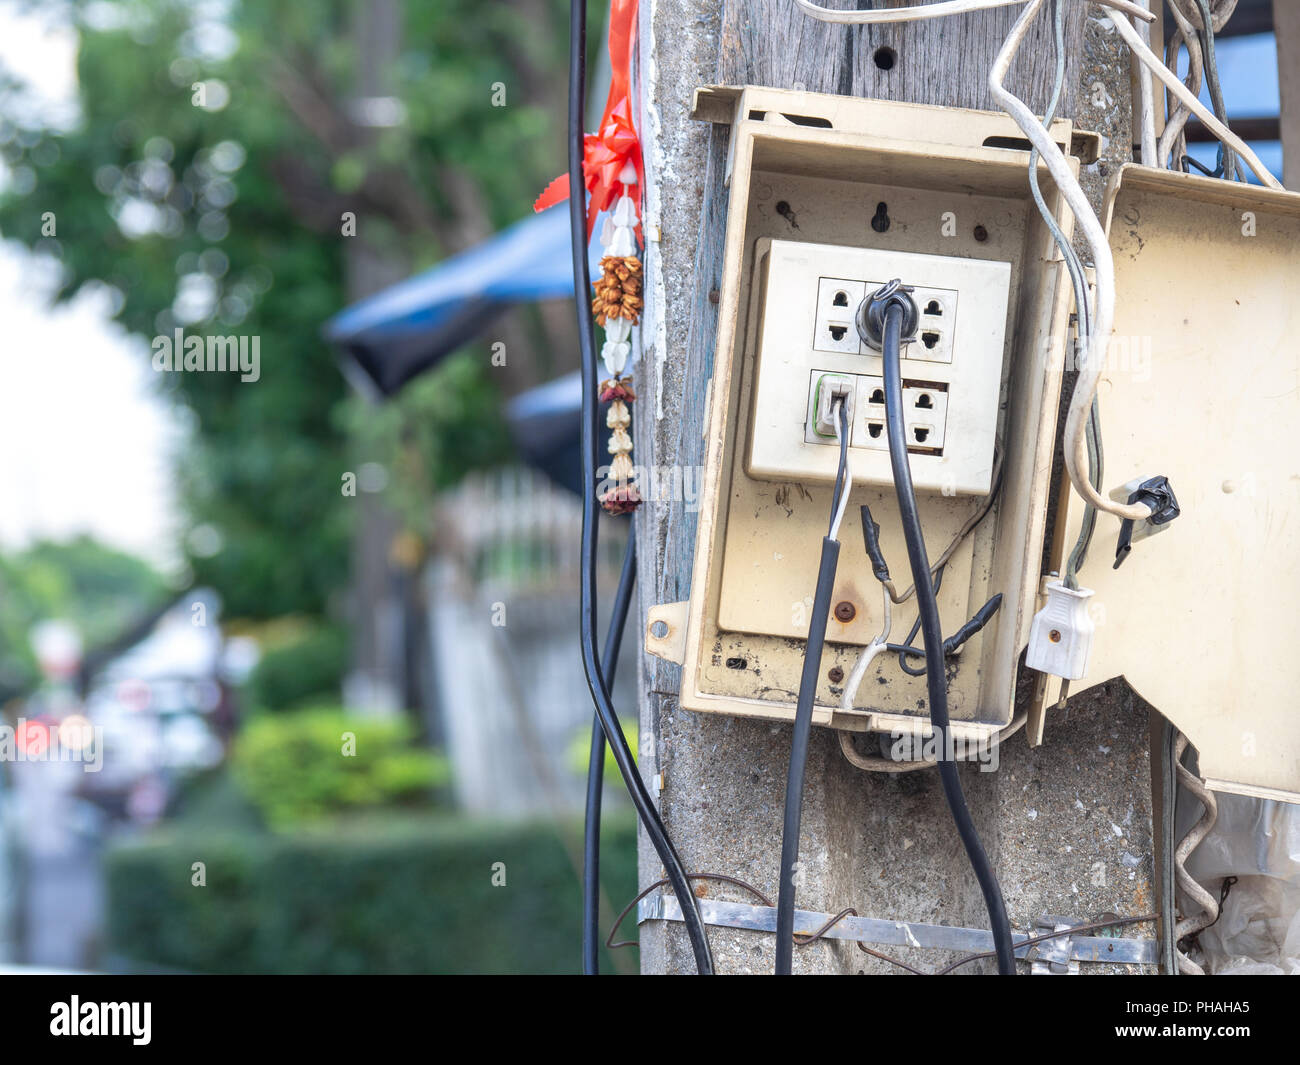 Power plugs are simple. And without regard to safety. Cause electric leak and fire. - Stock Image